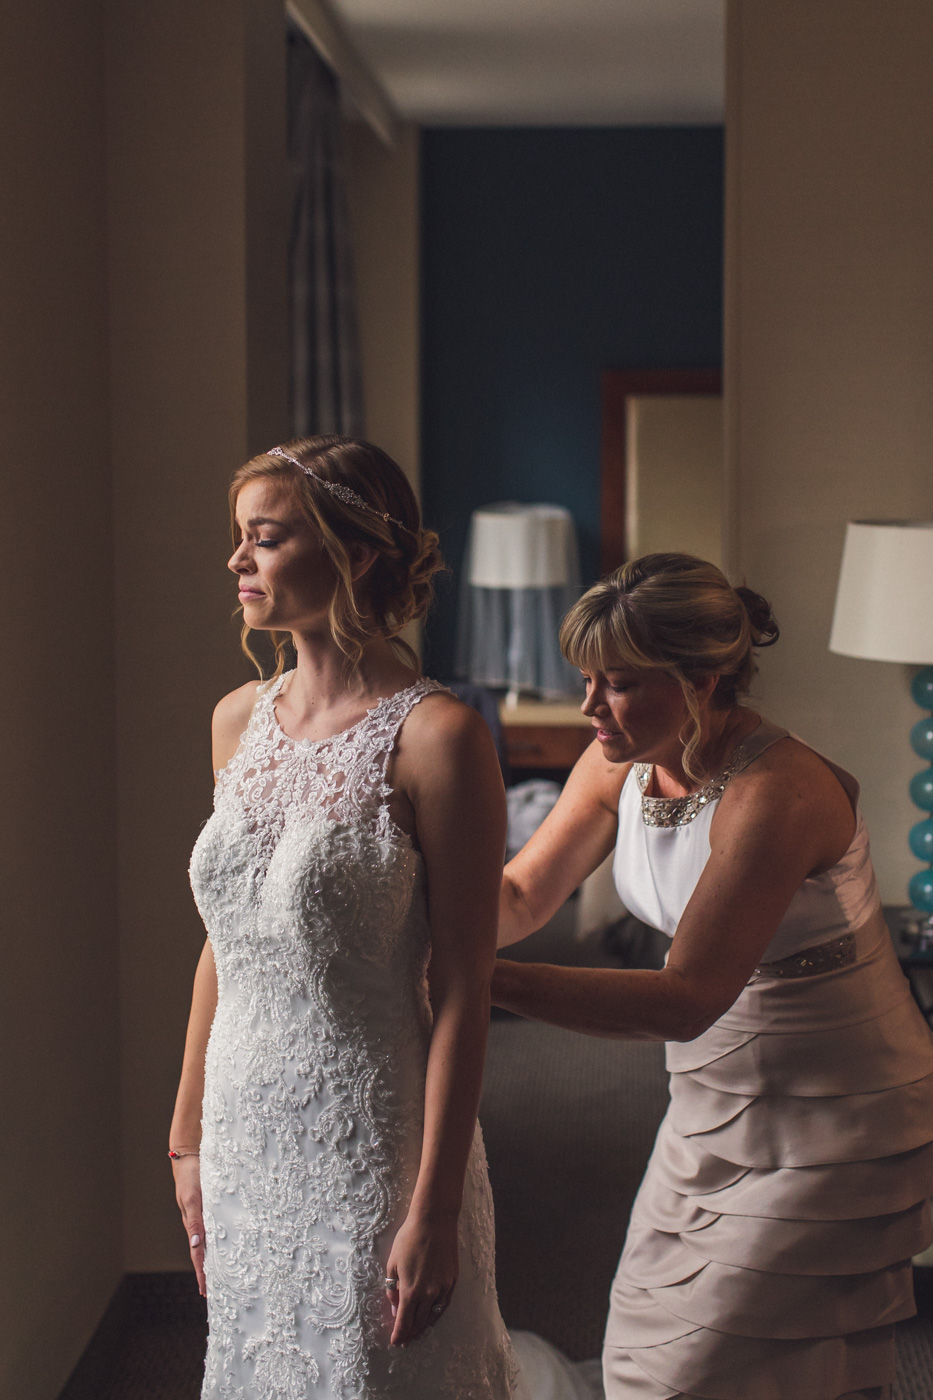 mother-getting-daughter-into-wedding-dress